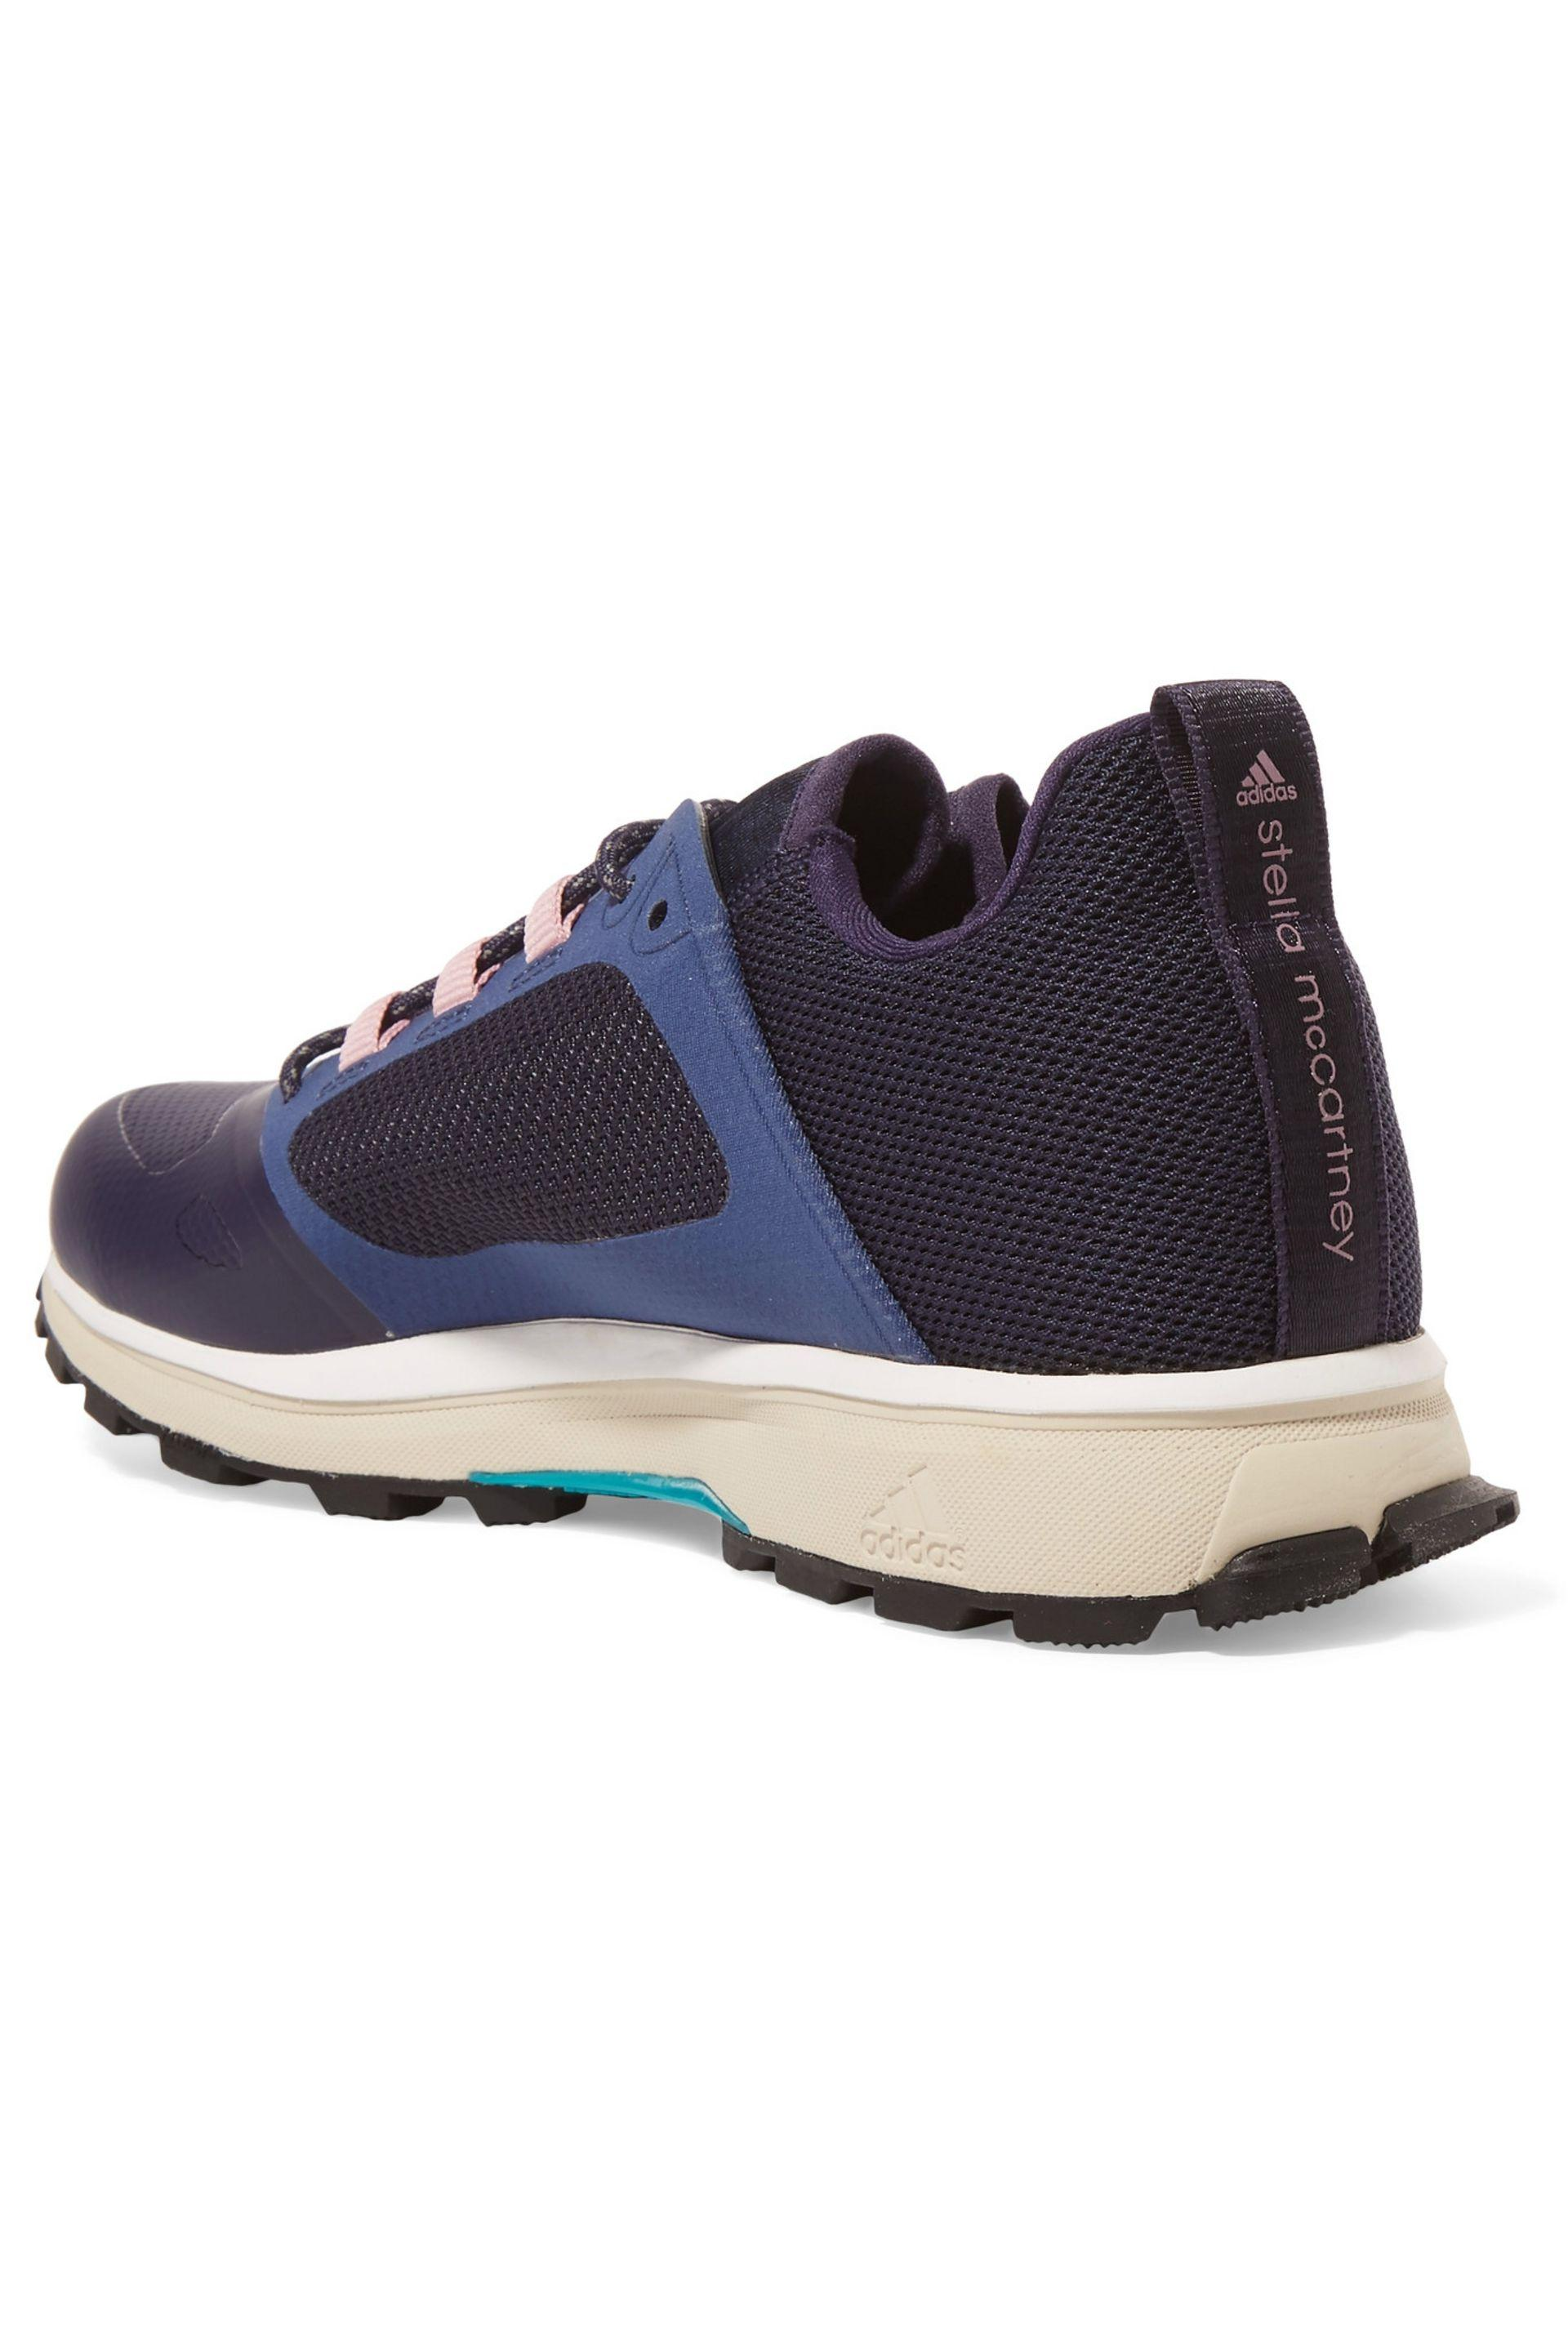 b2bbf2f5d7246 Adidas By Stella McCartney - Blue Woman Paneled Mesh And Rubber Sneakers  Navy - Lyst. View fullscreen